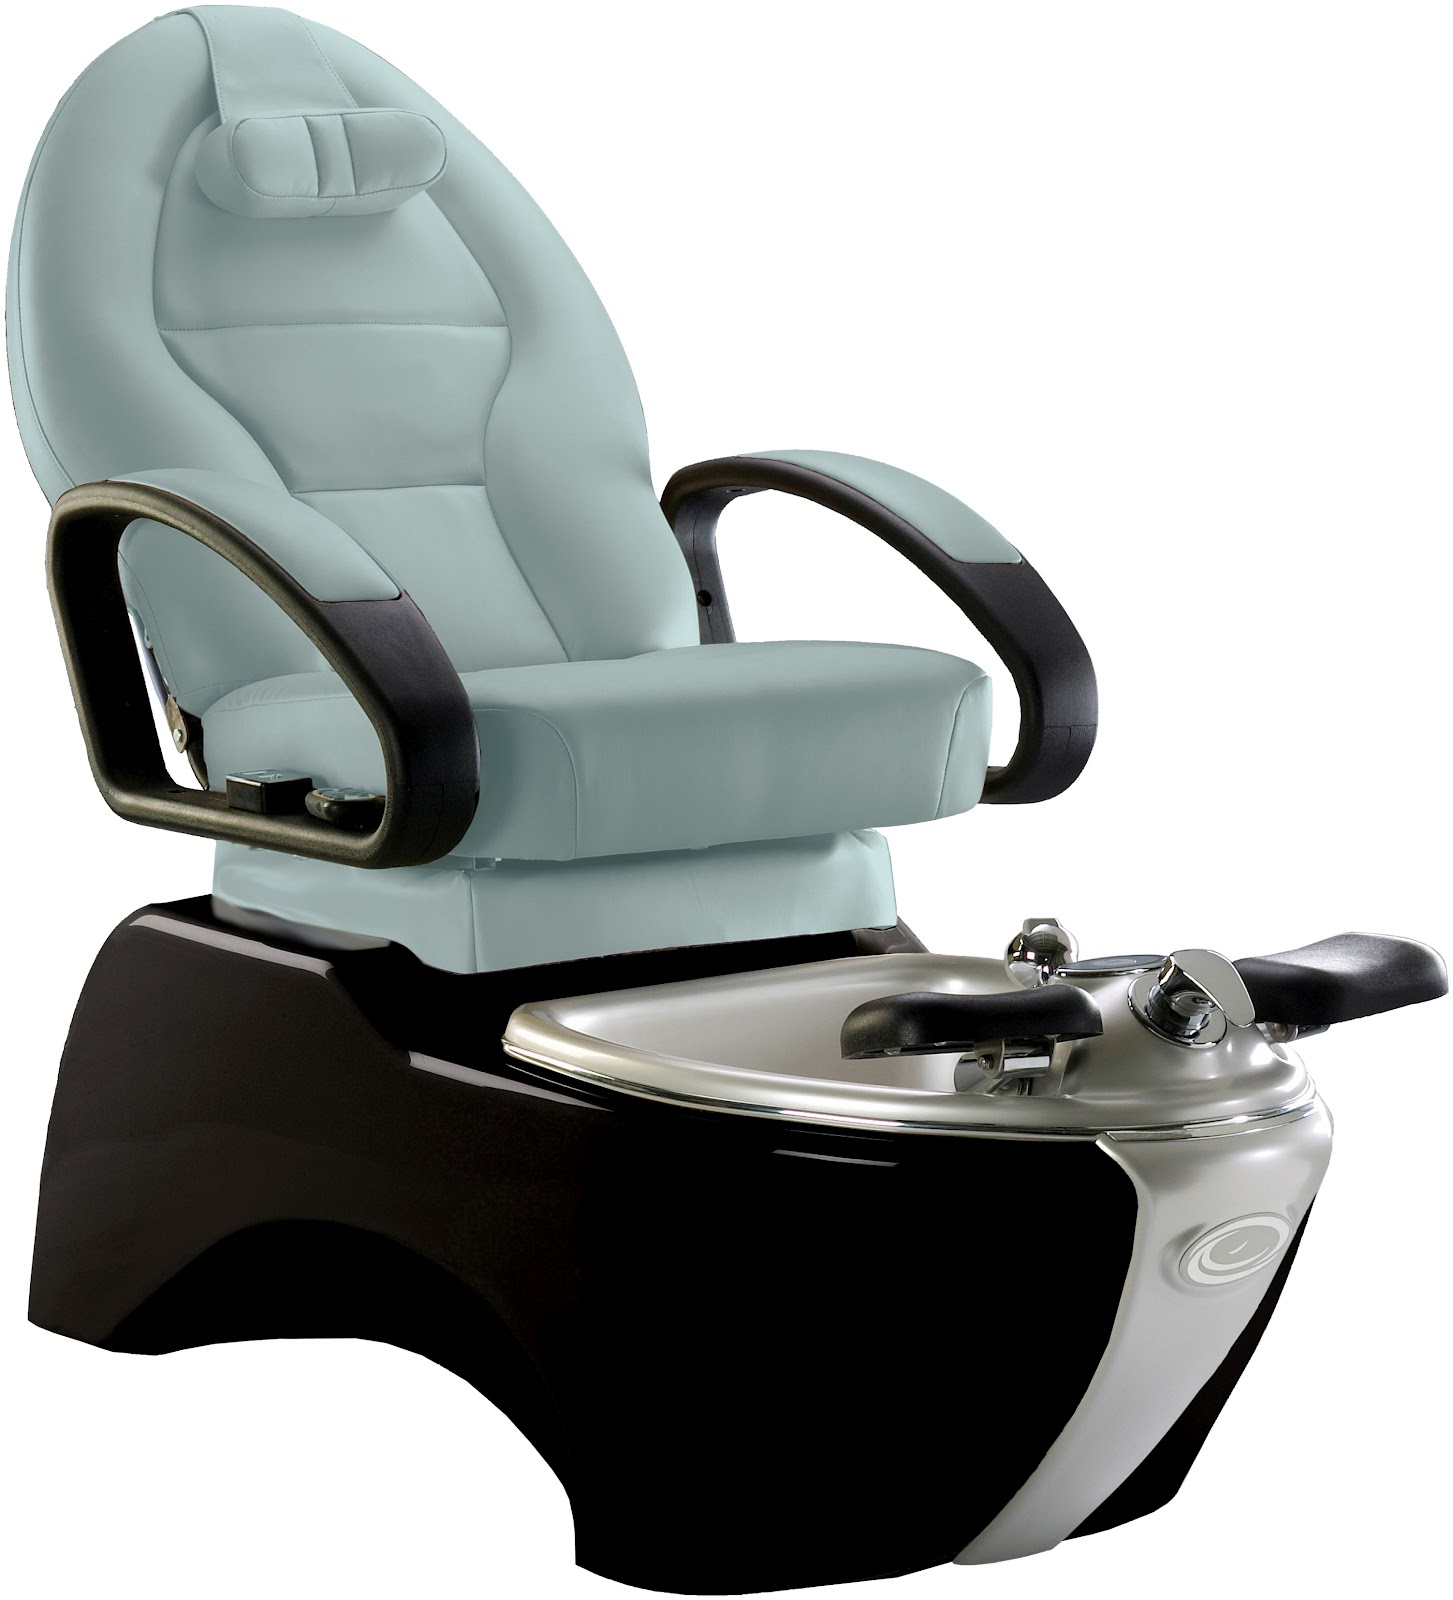 Purchase stylish salon furniture to make your salon more